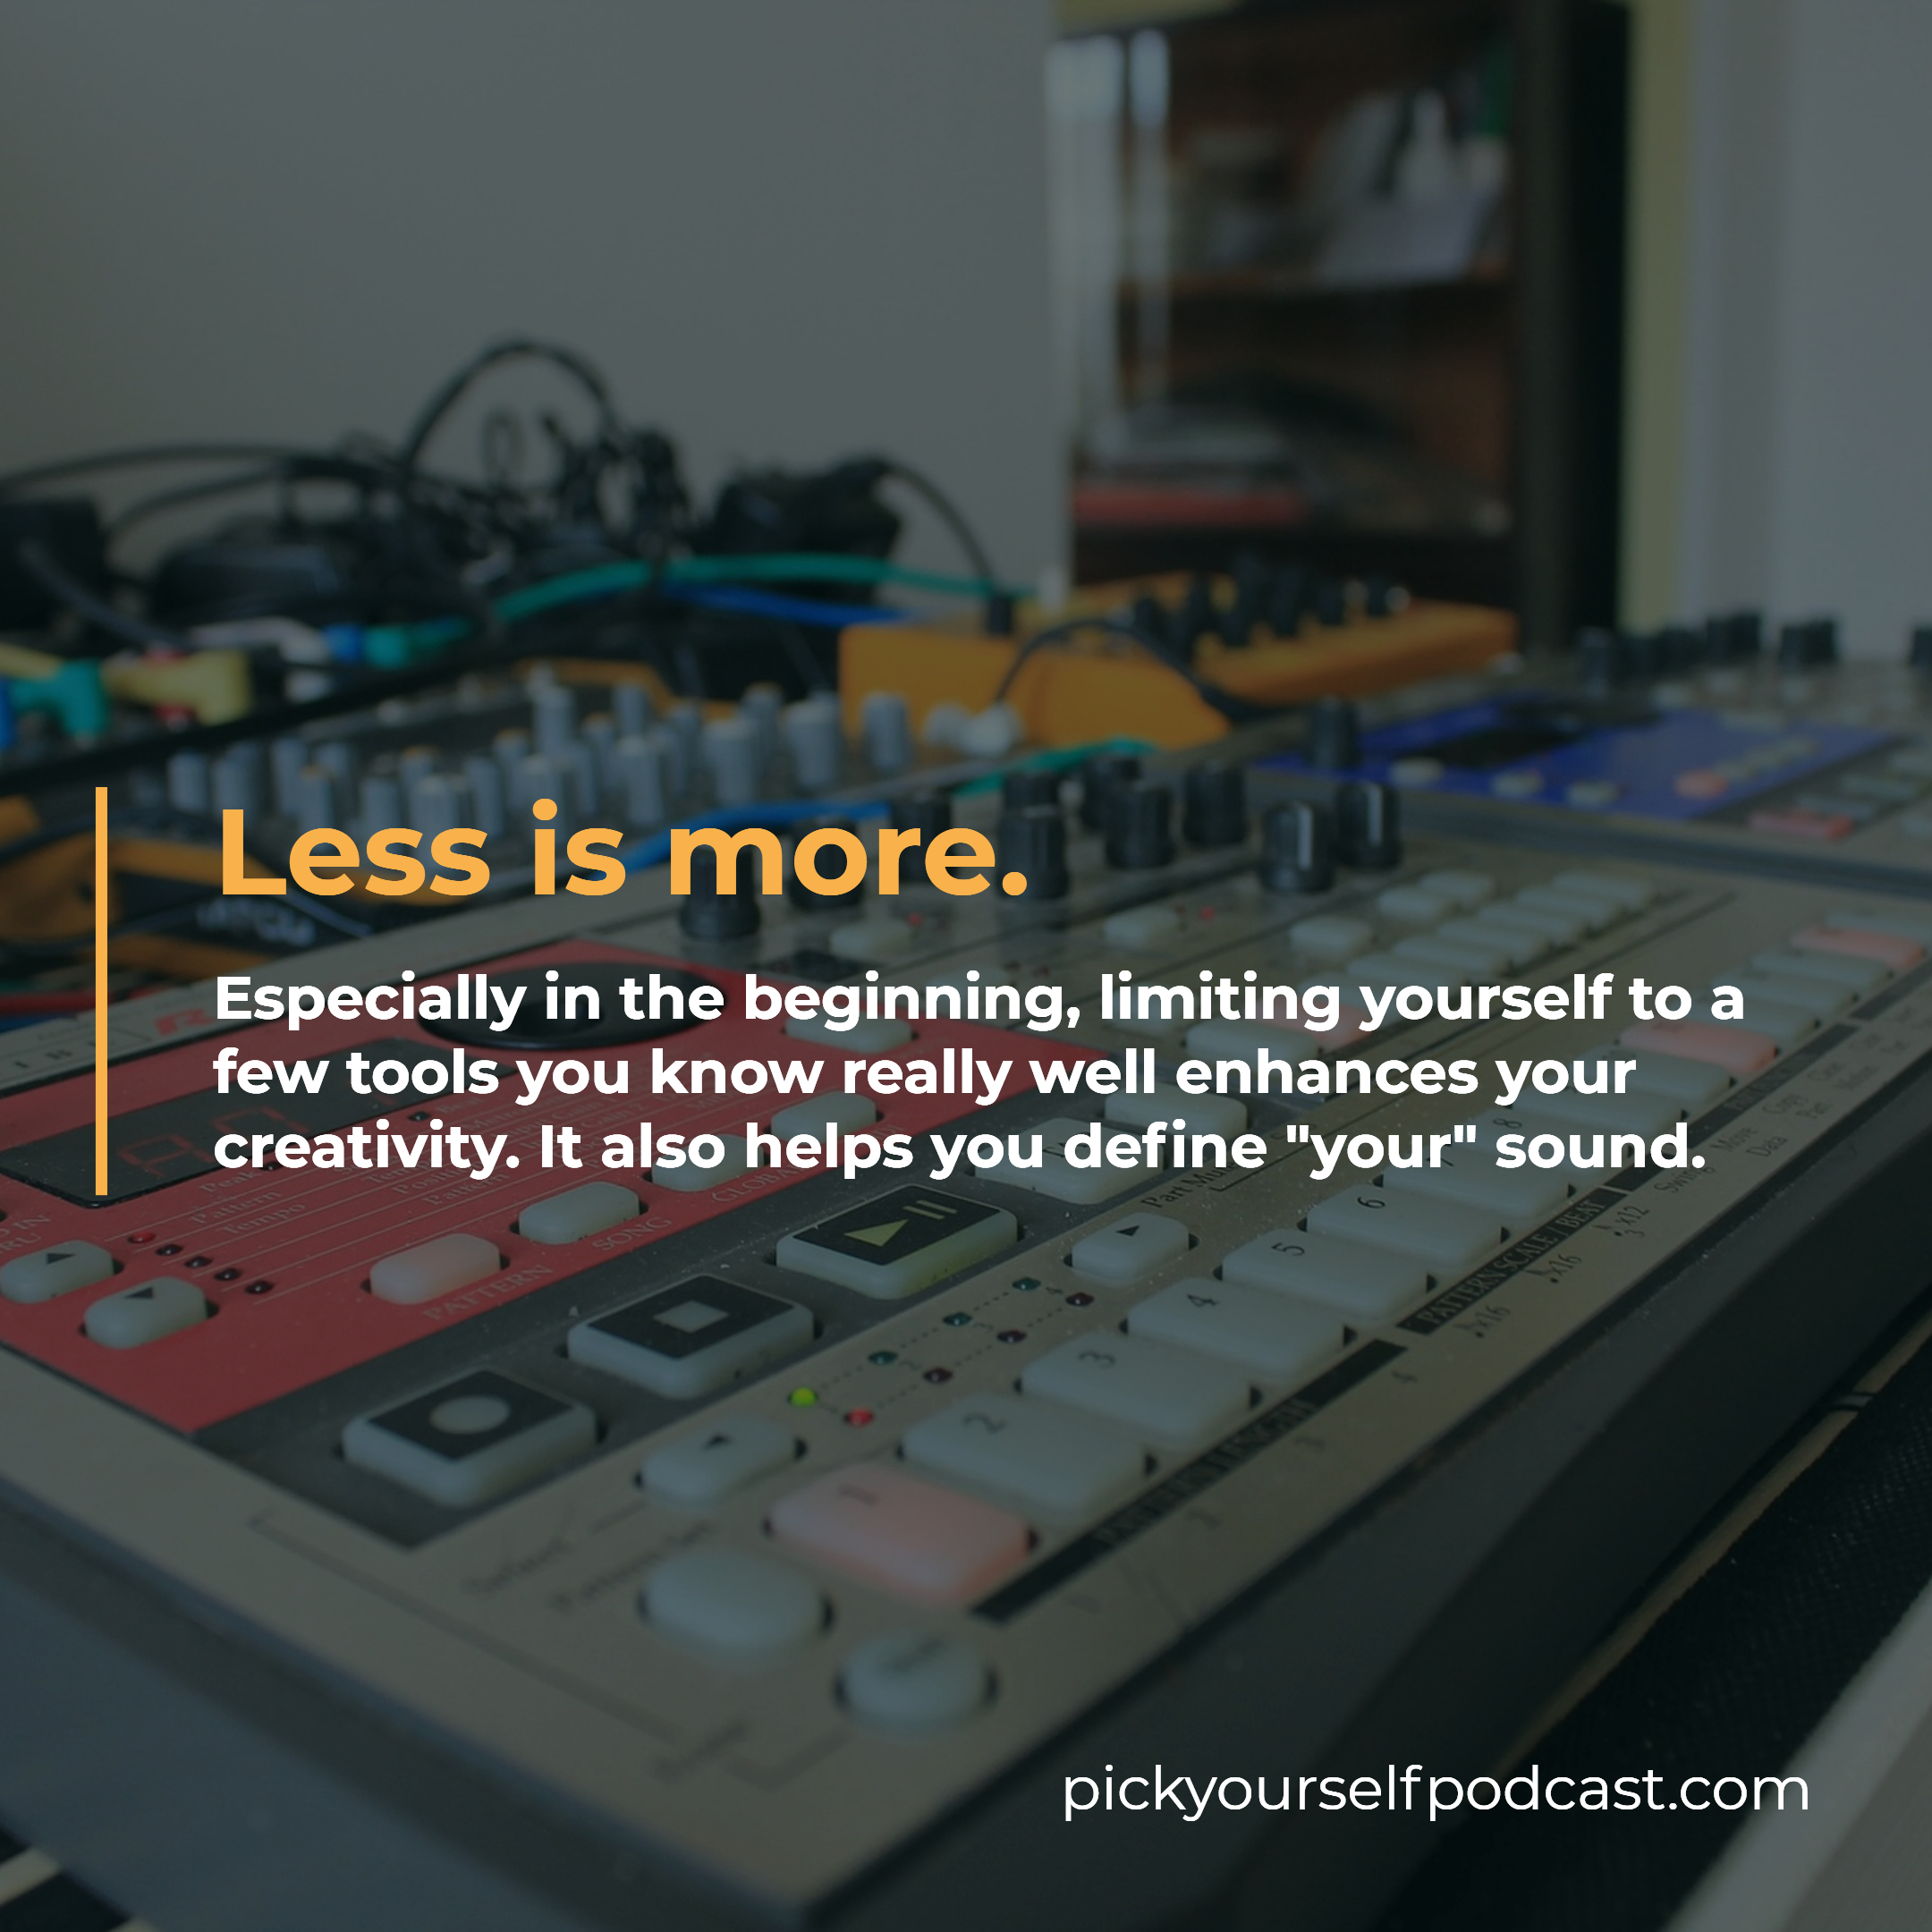 Gear for electronic music production visual 3. It says that less is more. You should focus on only a few key pieces of equipment.